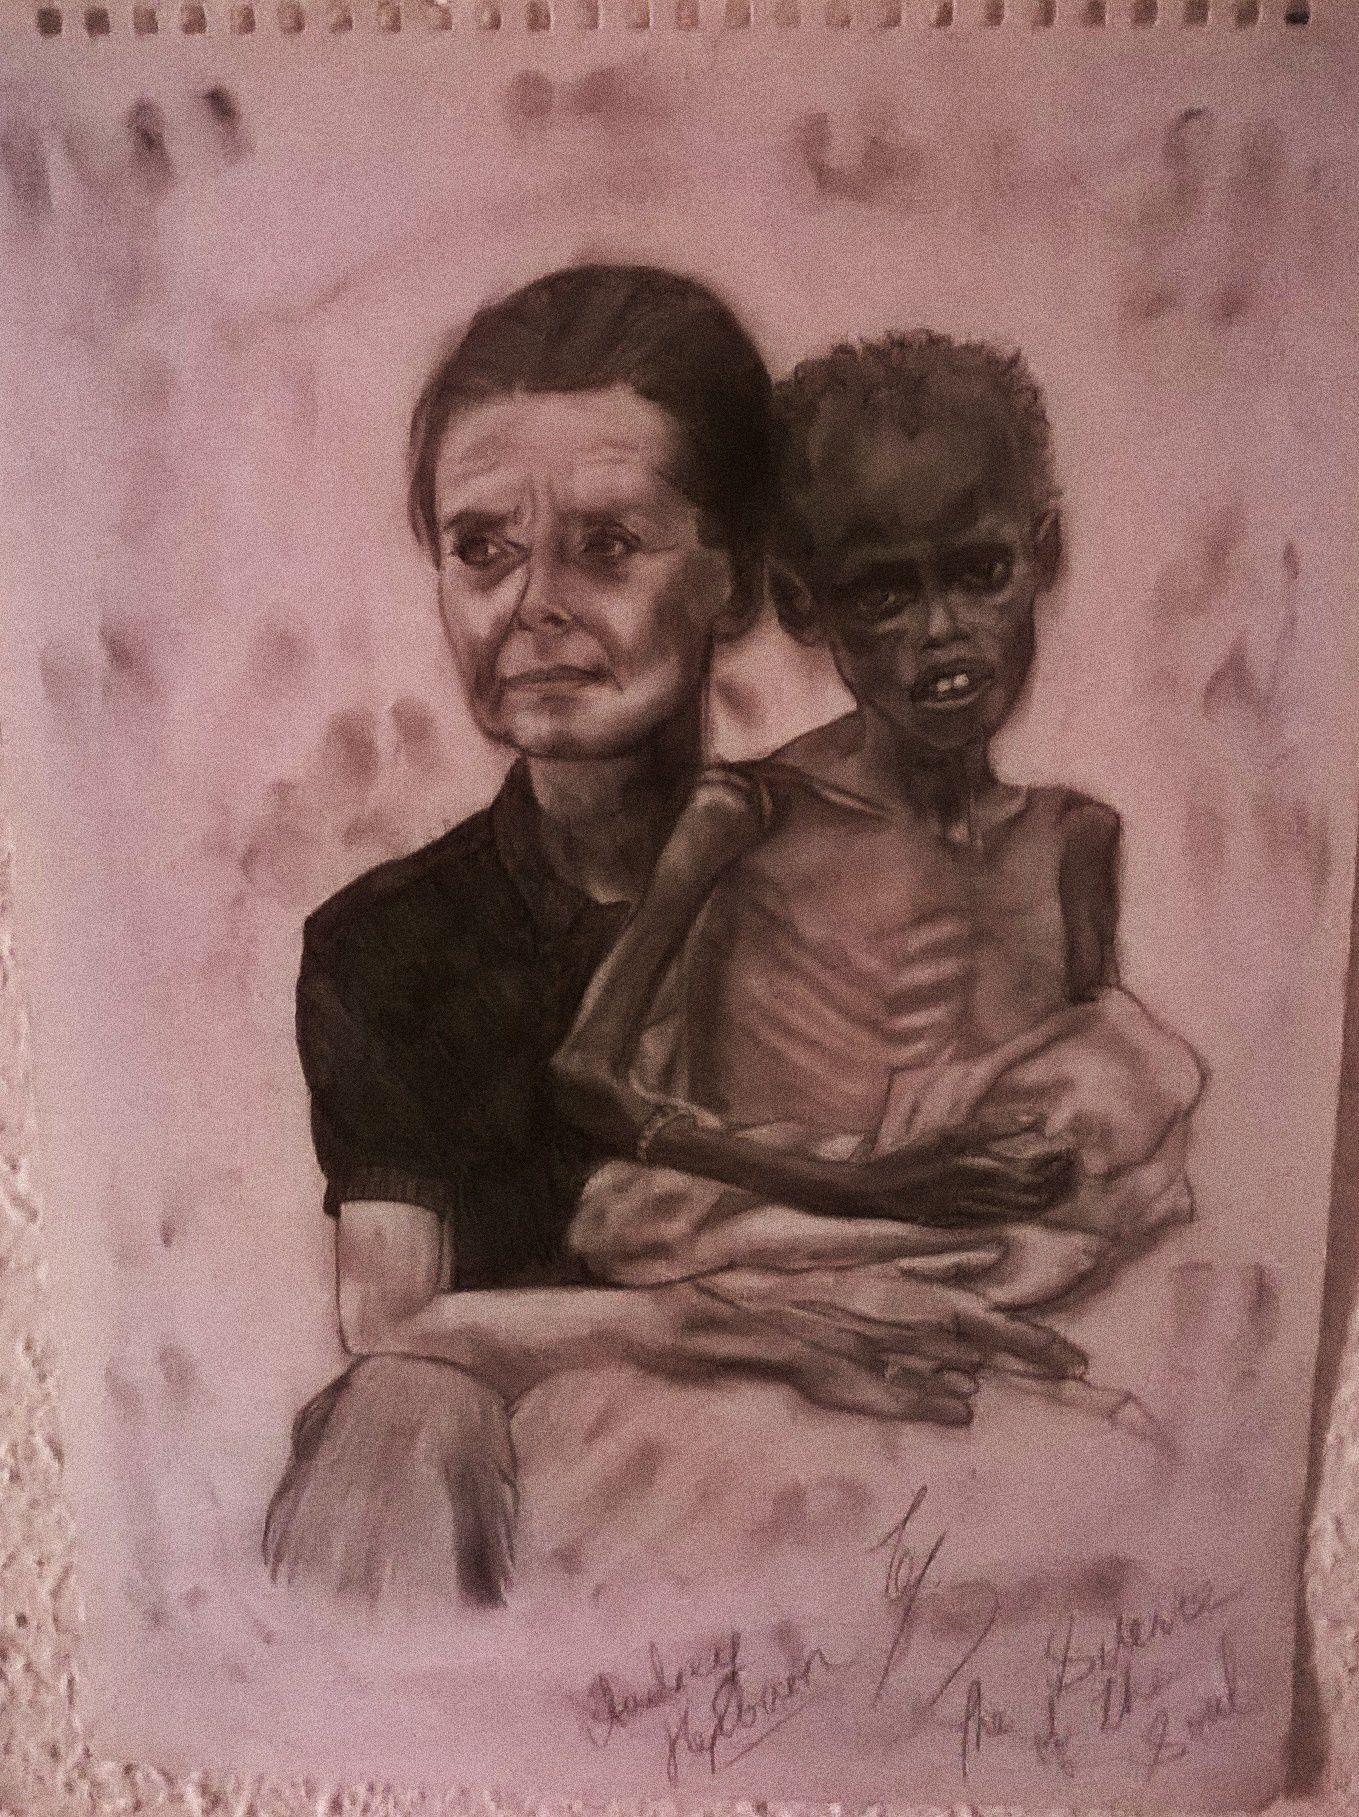 A Sketch of an older Audrey Hepburn with one of the